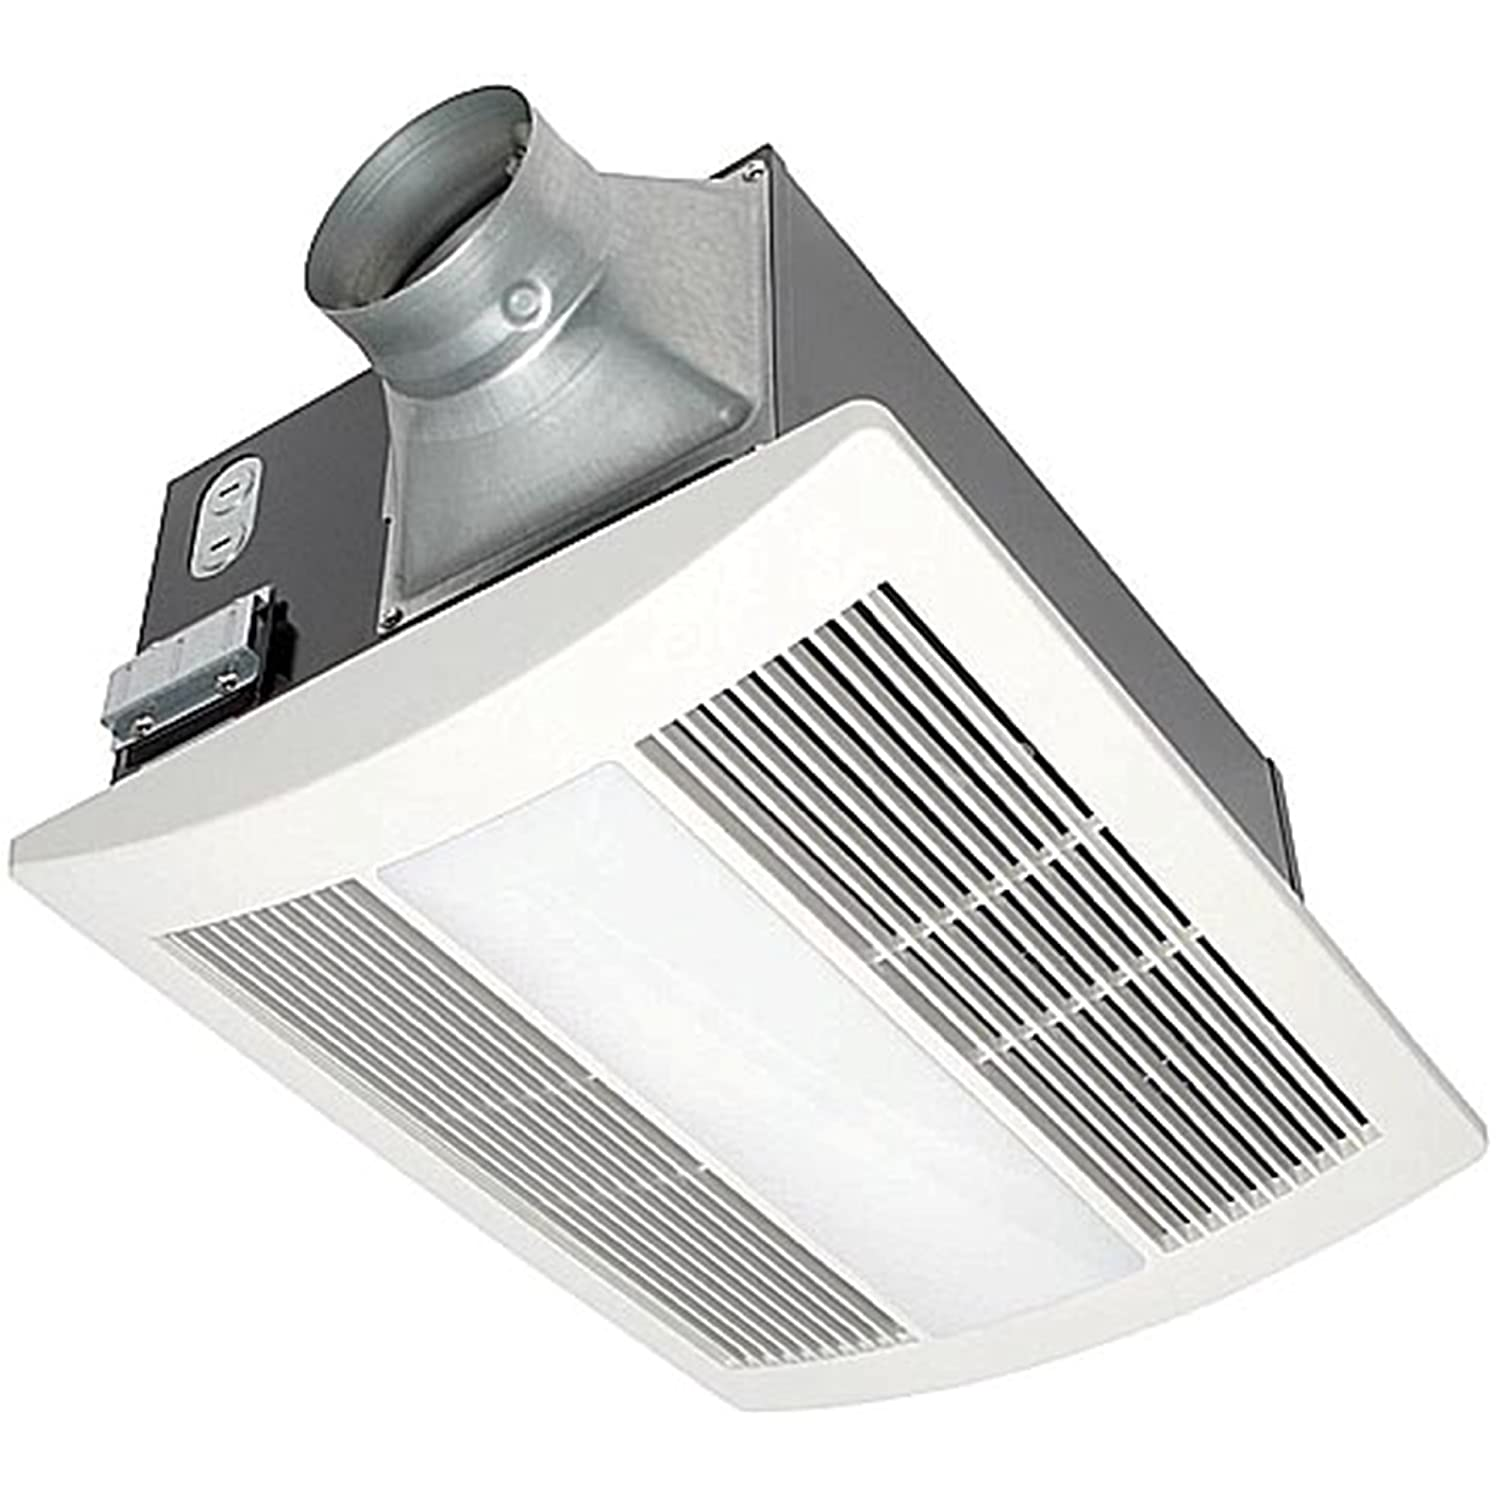 Panasonic FV-11VH2 Whisper Warm 110 CFM Ceiling Mounted Fan Heat Combination White/Cream - Heaters - Amazon.com  sc 1 st  Amazon.com & Panasonic FV-11VH2 Whisper Warm 110 CFM Ceiling Mounted Fan Heat ...